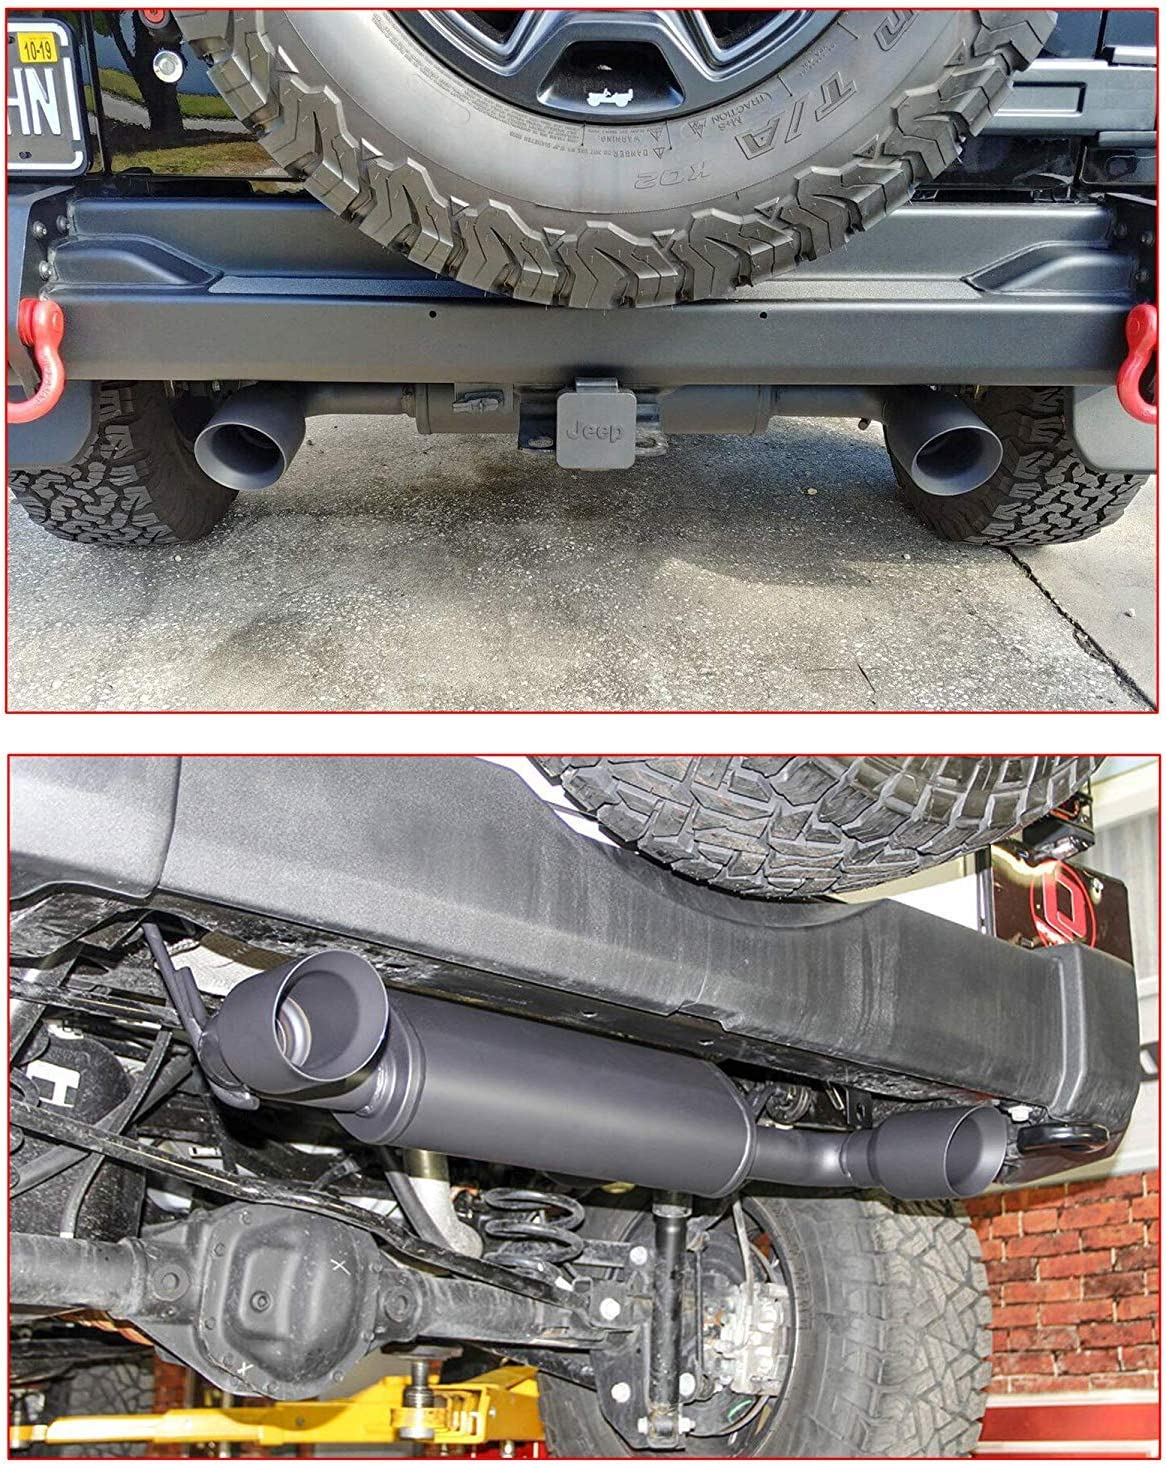 Black MOEBULB Dual Outlet Axle-Back Exhaust Tip System Kit for 2007-2017 Jeep Wrangler JK Dual Split Cat Back Exhaust Pipe